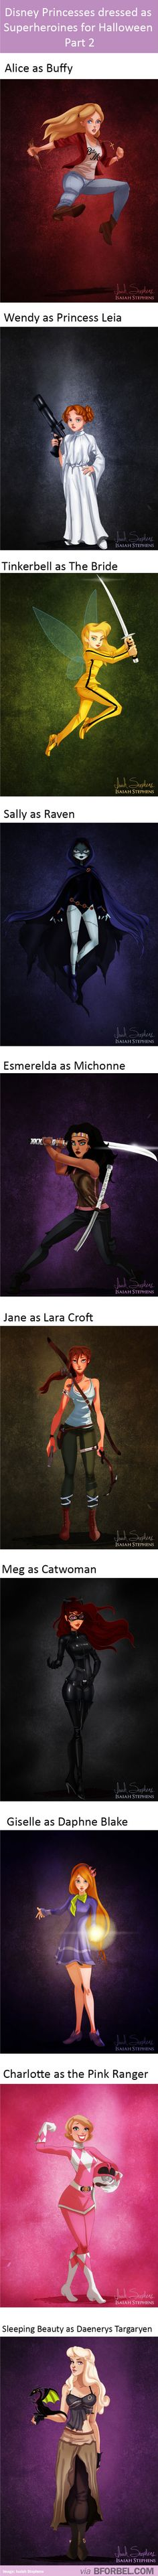 More Disney Princesses dressed as Superheroes.